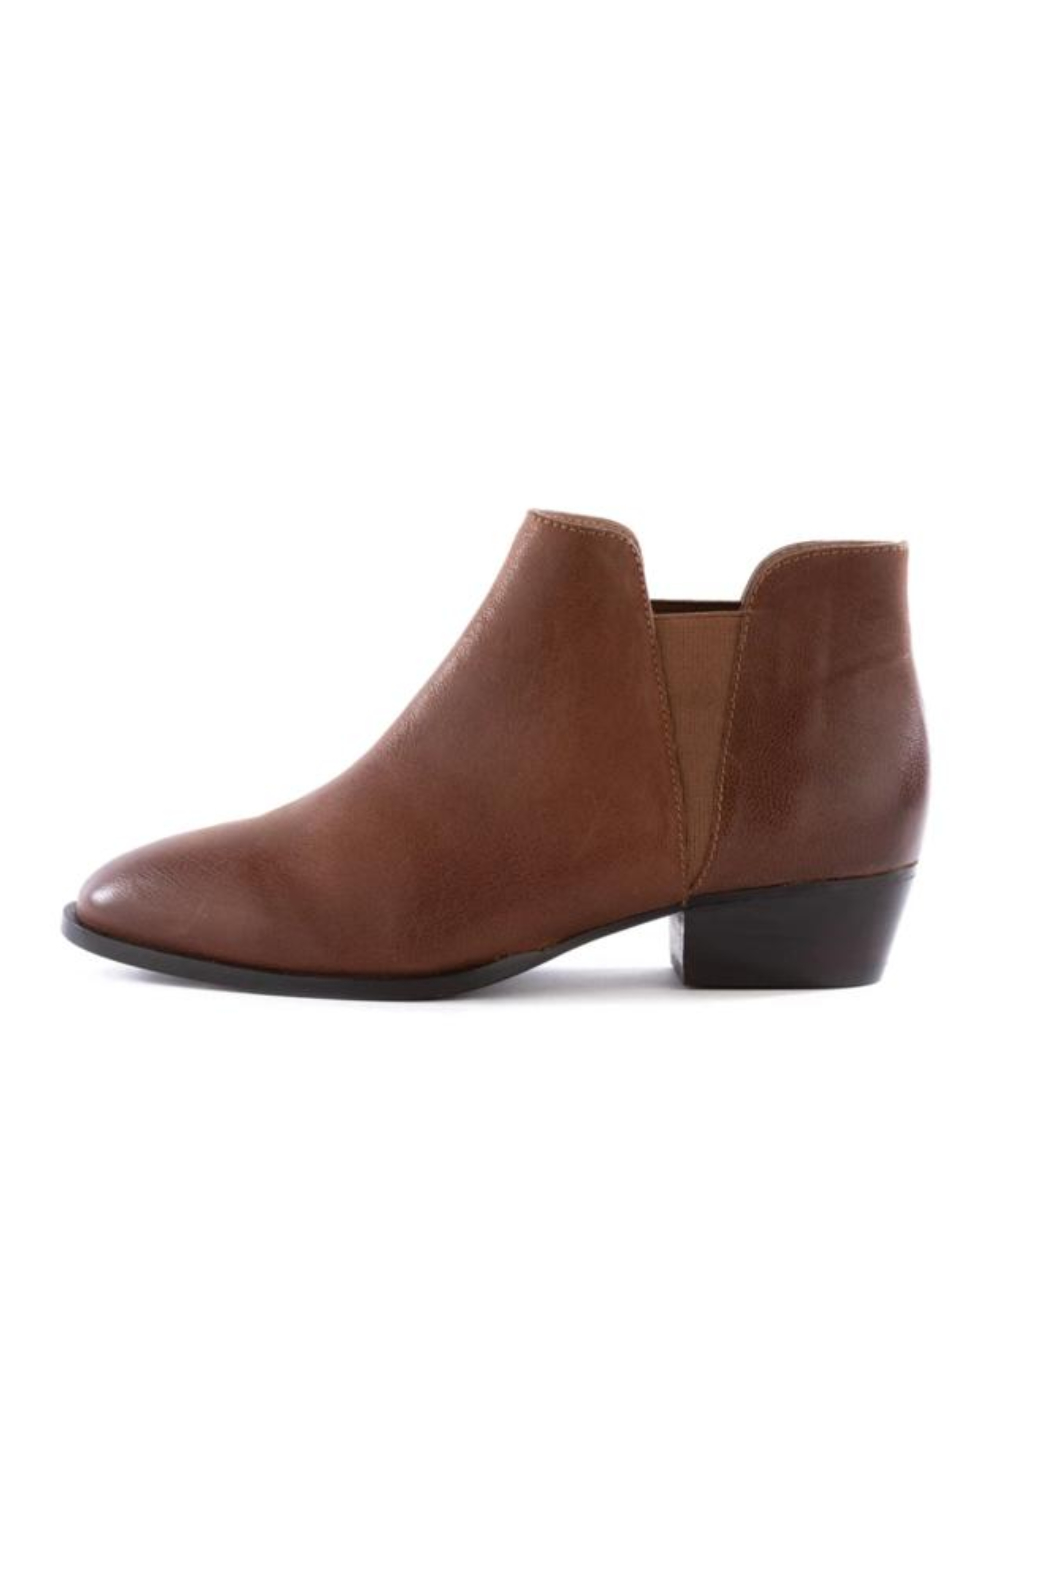 Seychelles Waiting For You Leather Bootie - Main Image